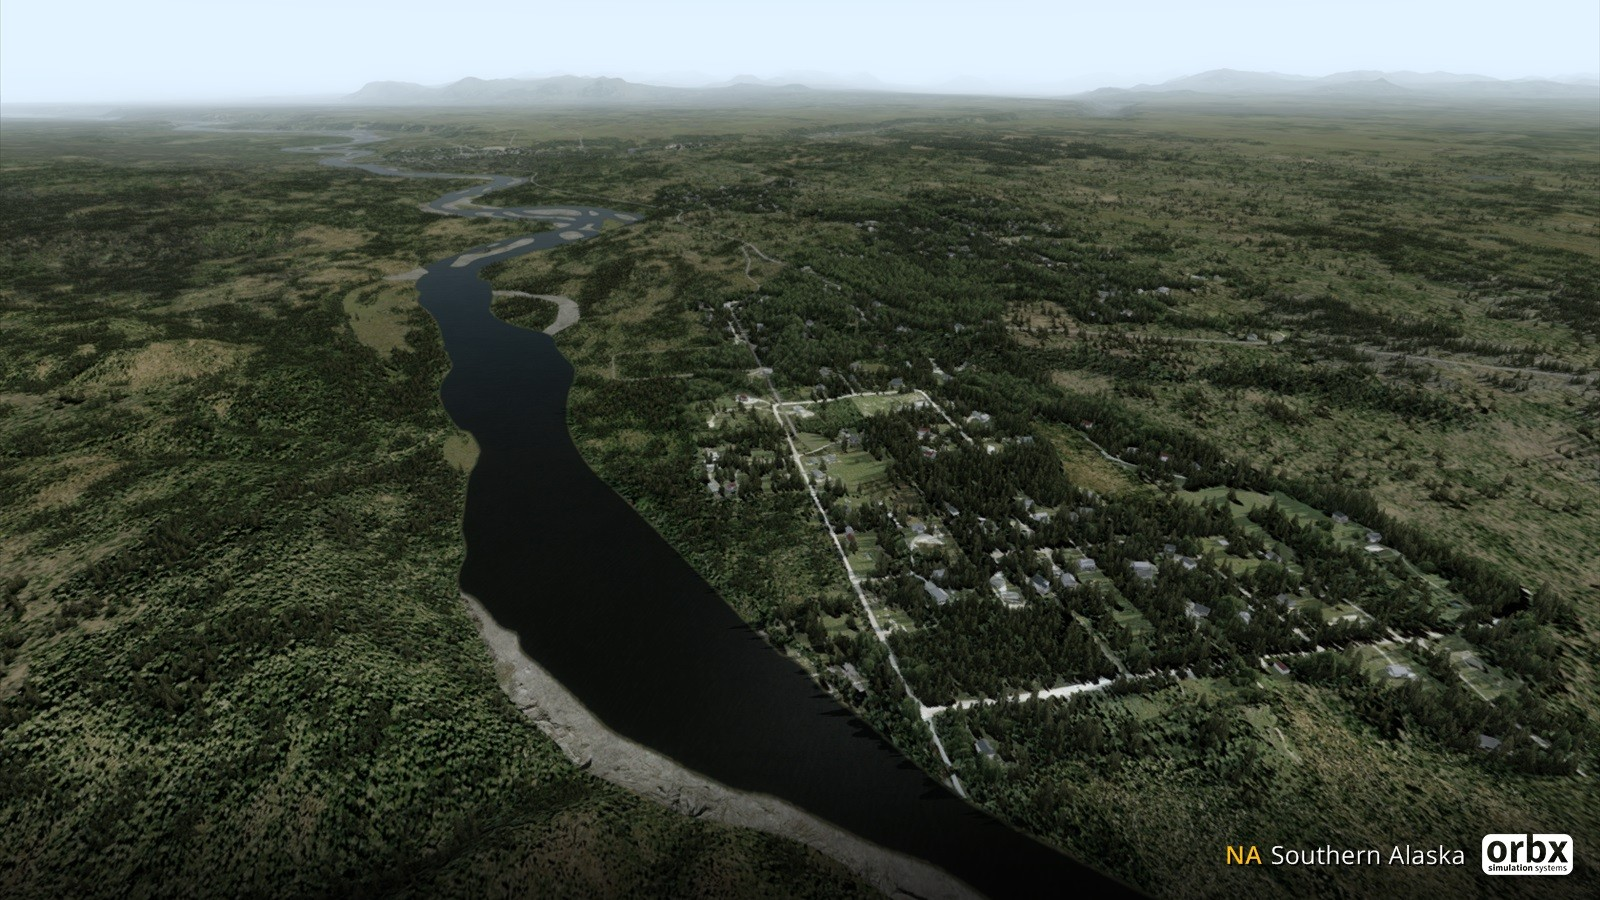 Top Five Orbx Southern Alaska Map - Circus